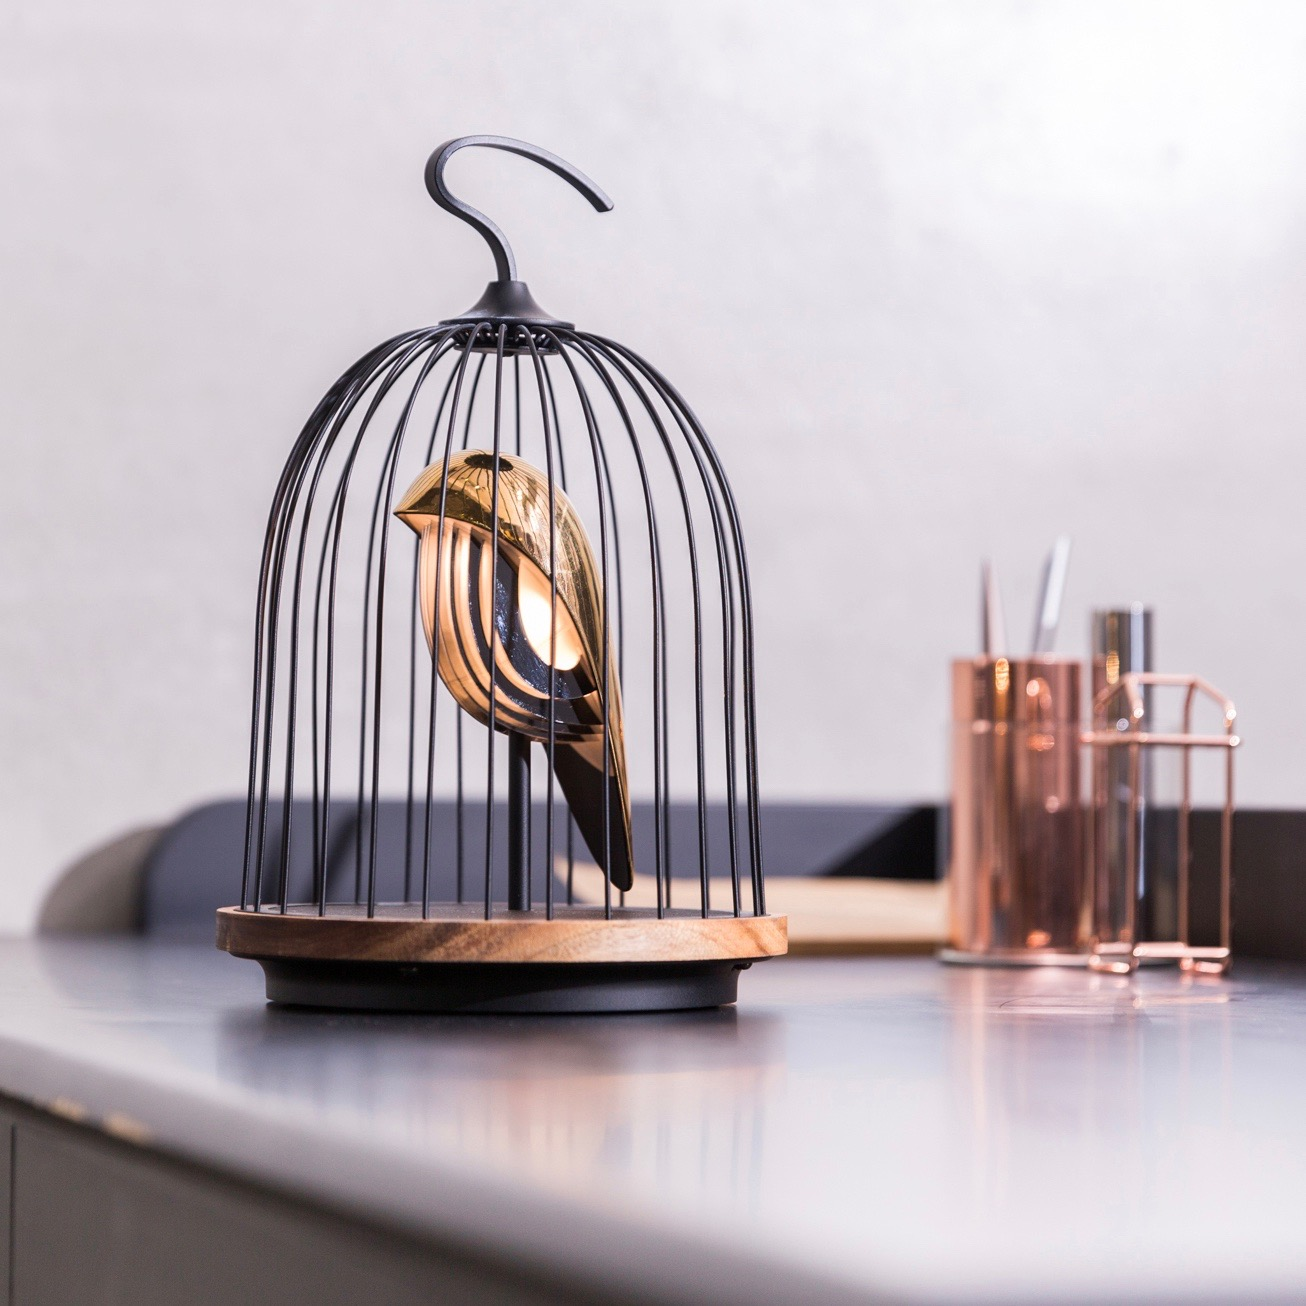 DAQIconcept Jingoo Bluetooth speaker 'The Phoenix'